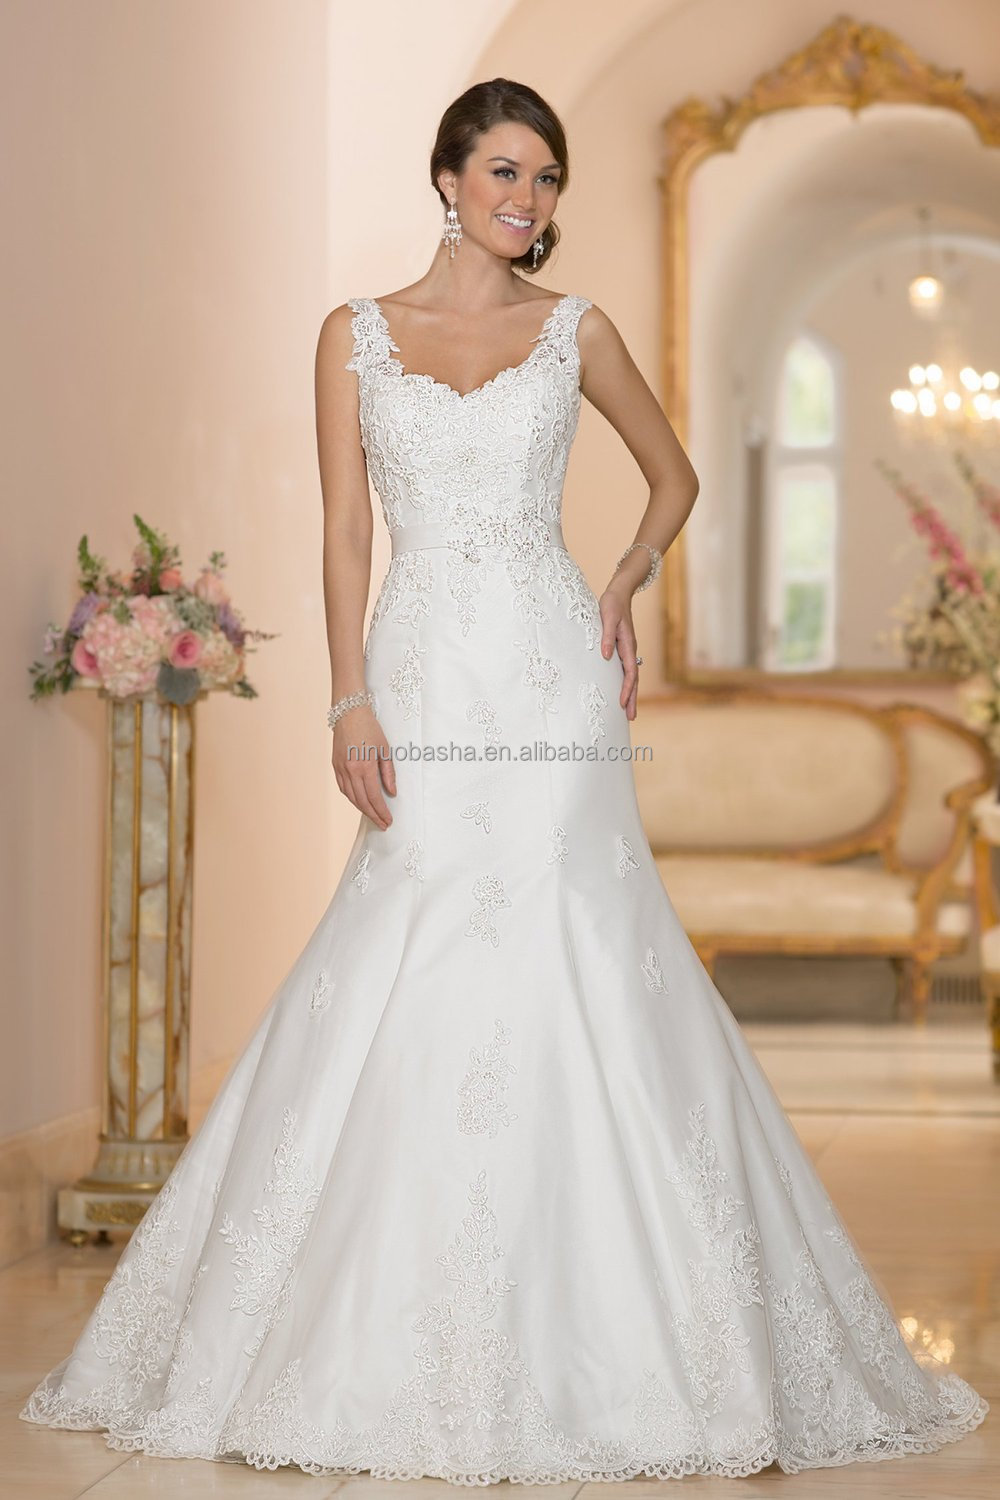 Vogue Mermaid Wedding Dress With Straps 2015 Sweetheart Full-length ...